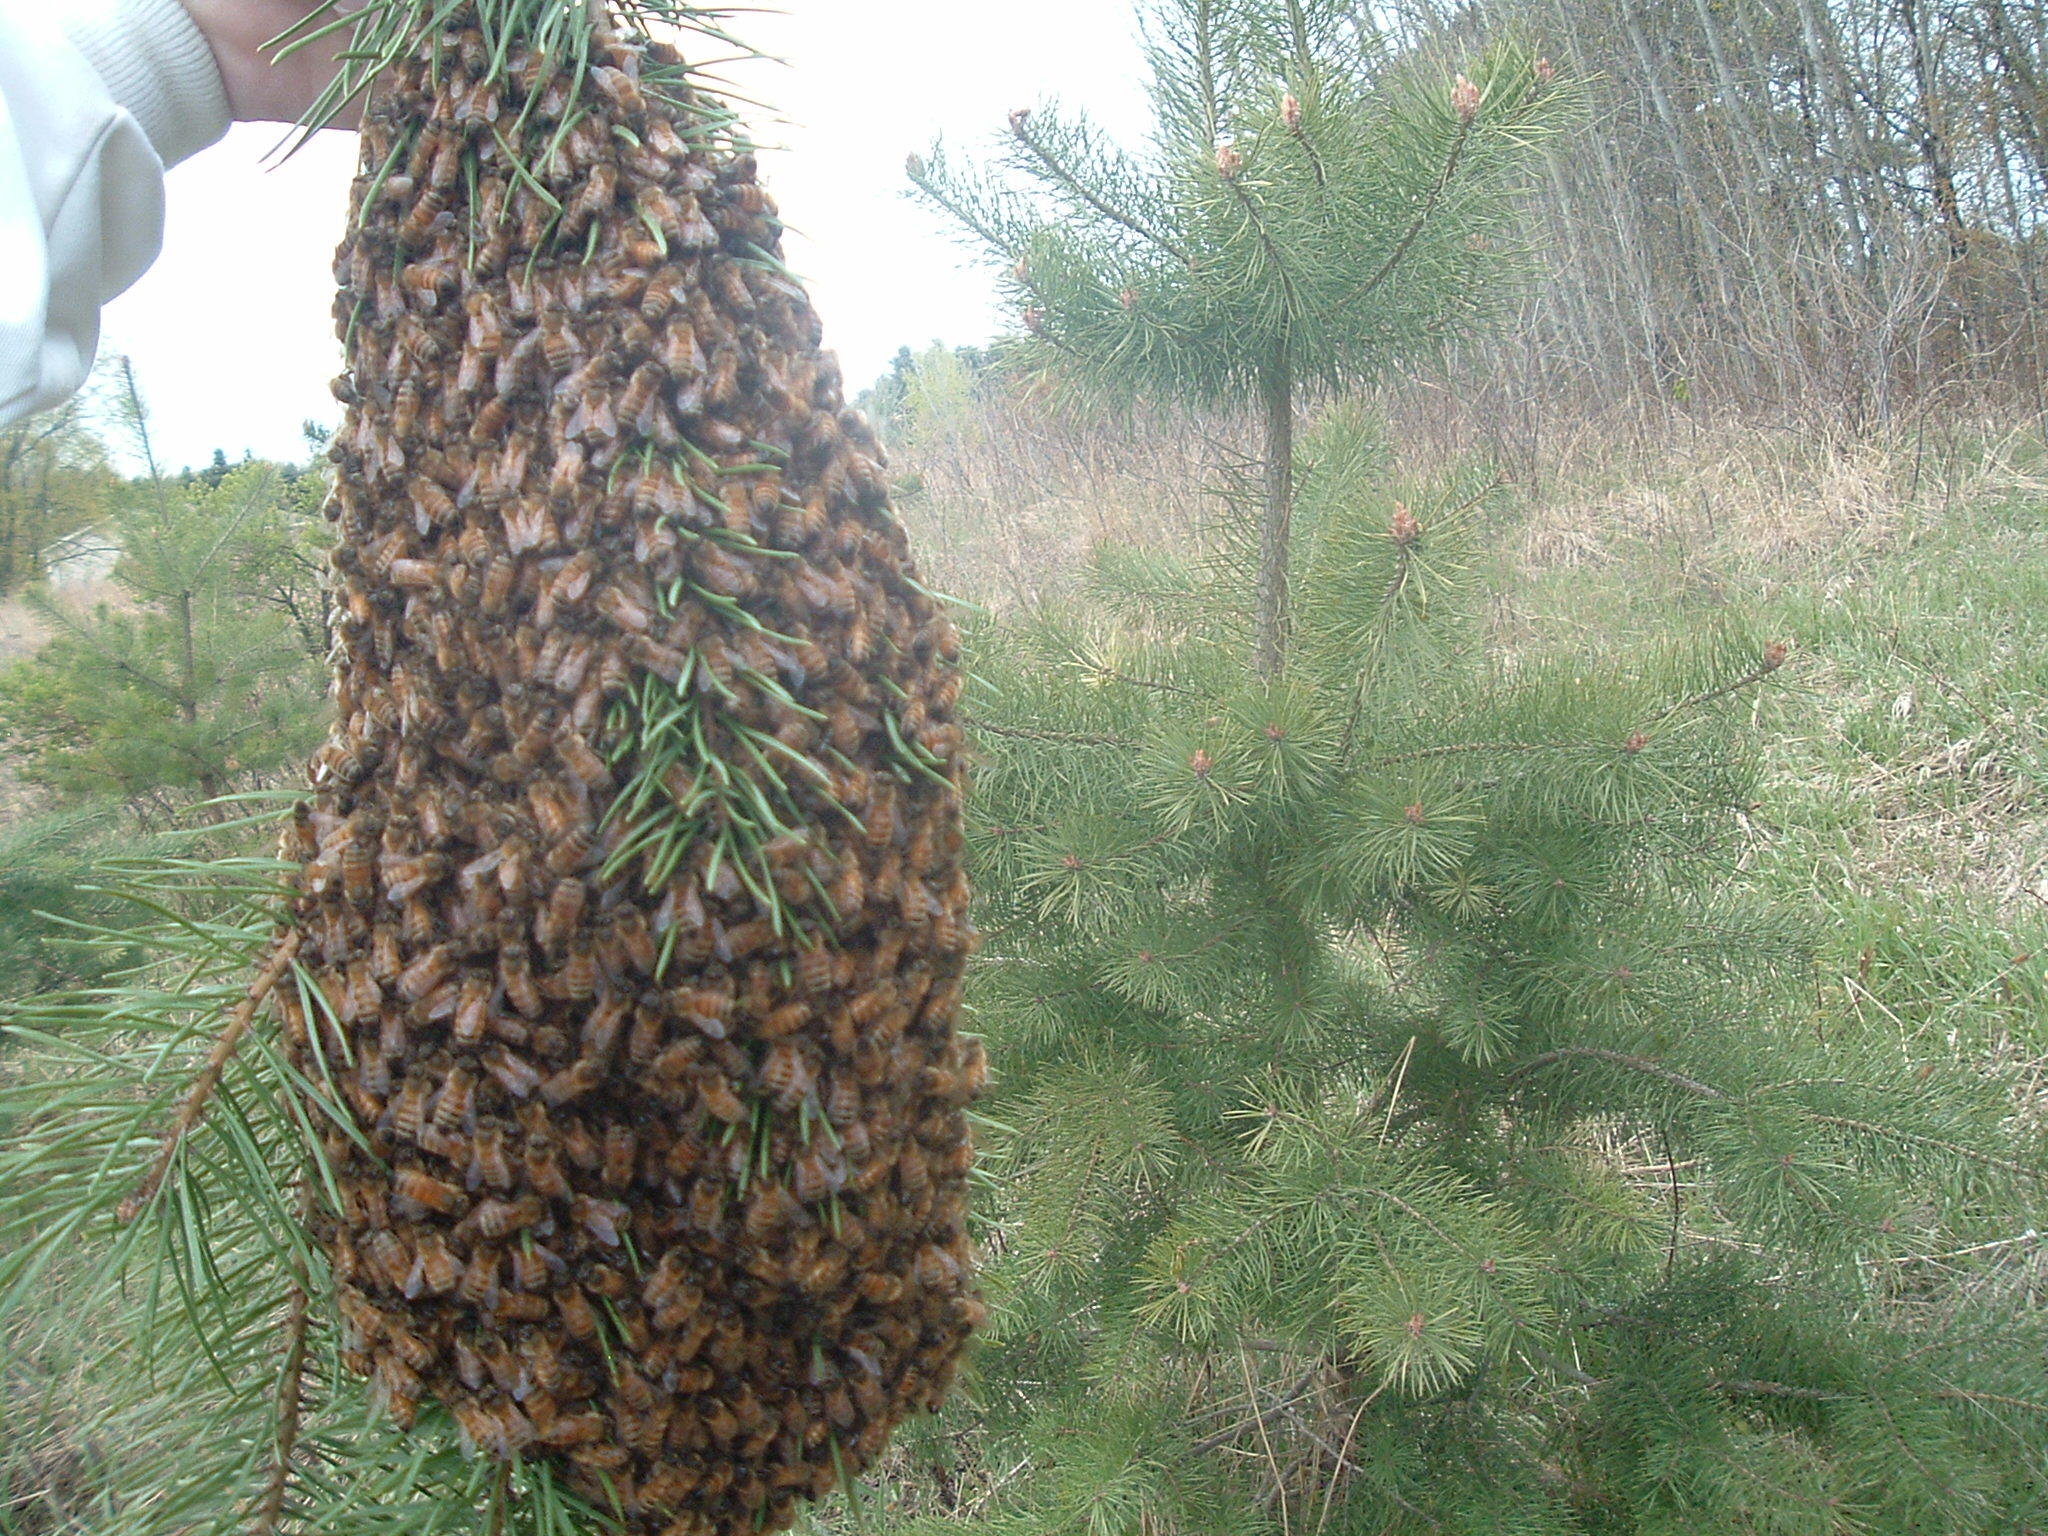 Healthy swarm of honeybees looking for a new home. You can give them one!